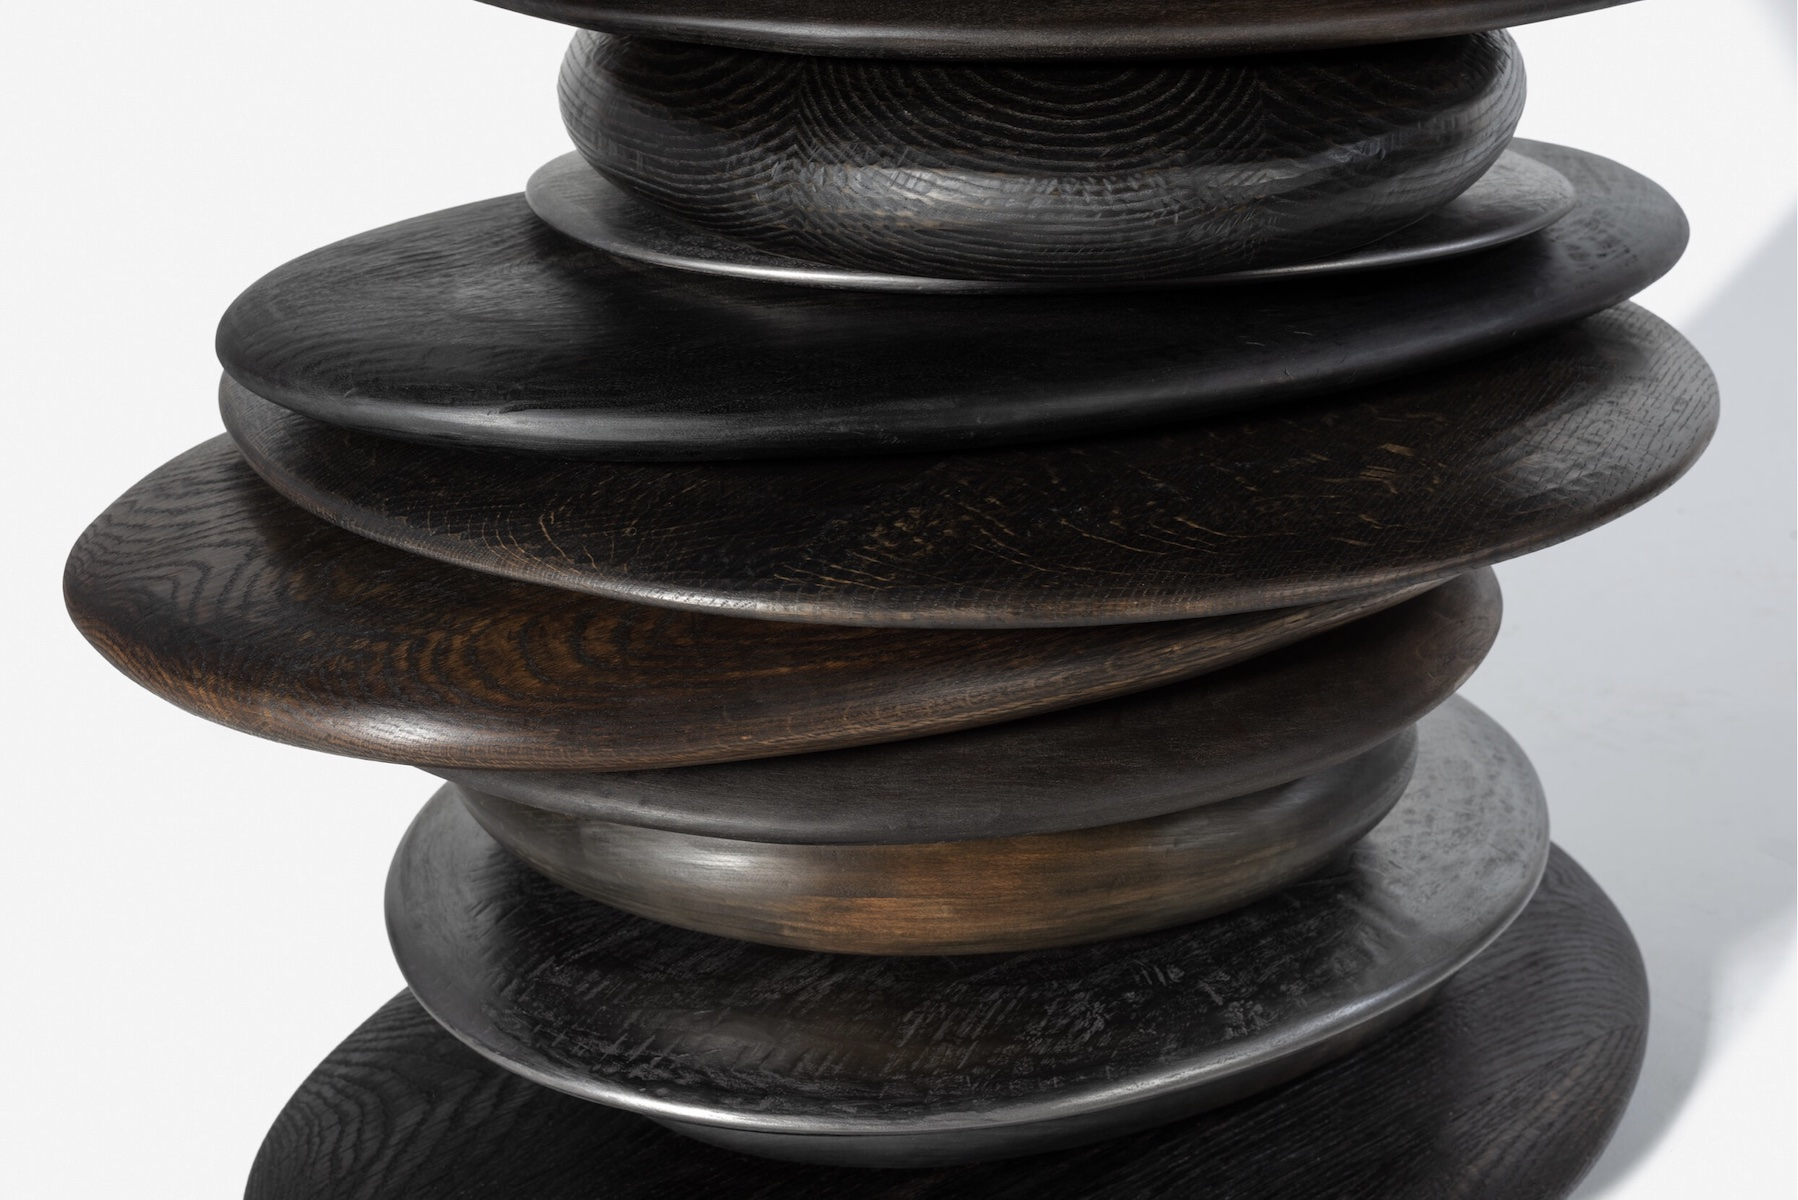 detail of the Skipping Stone Console by artist Christopher Kurtz.